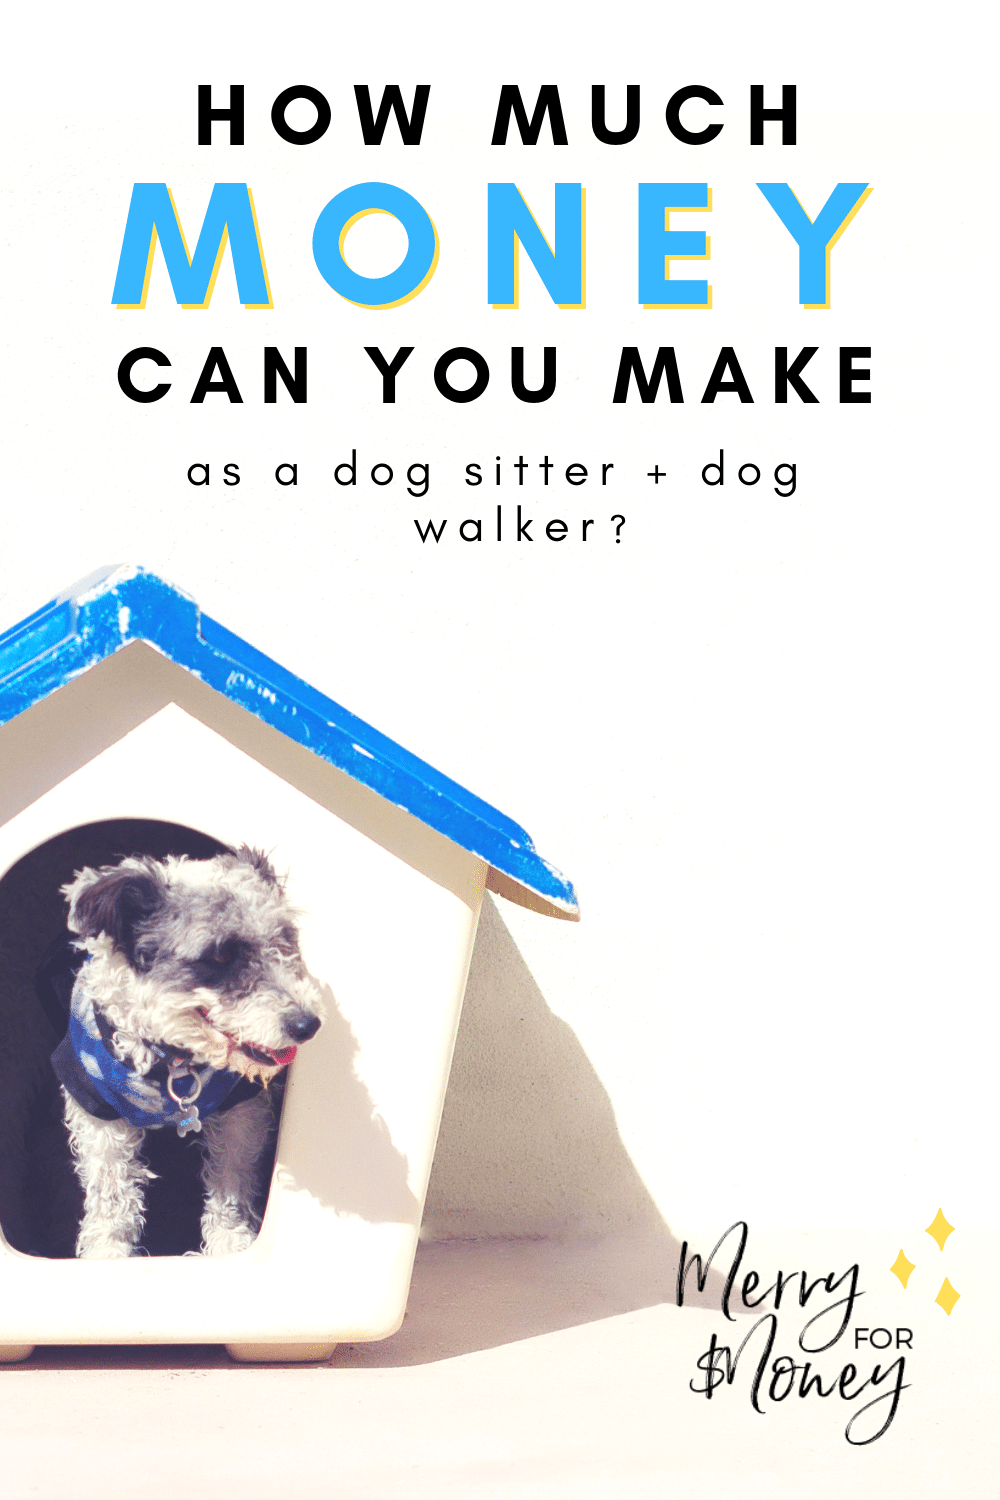 How Much Money Make as a Dog Walker and Dog Sitter -- Extra Income Side Hustle Pet Sitting Rover DogVacay dog walking, dog daycare.